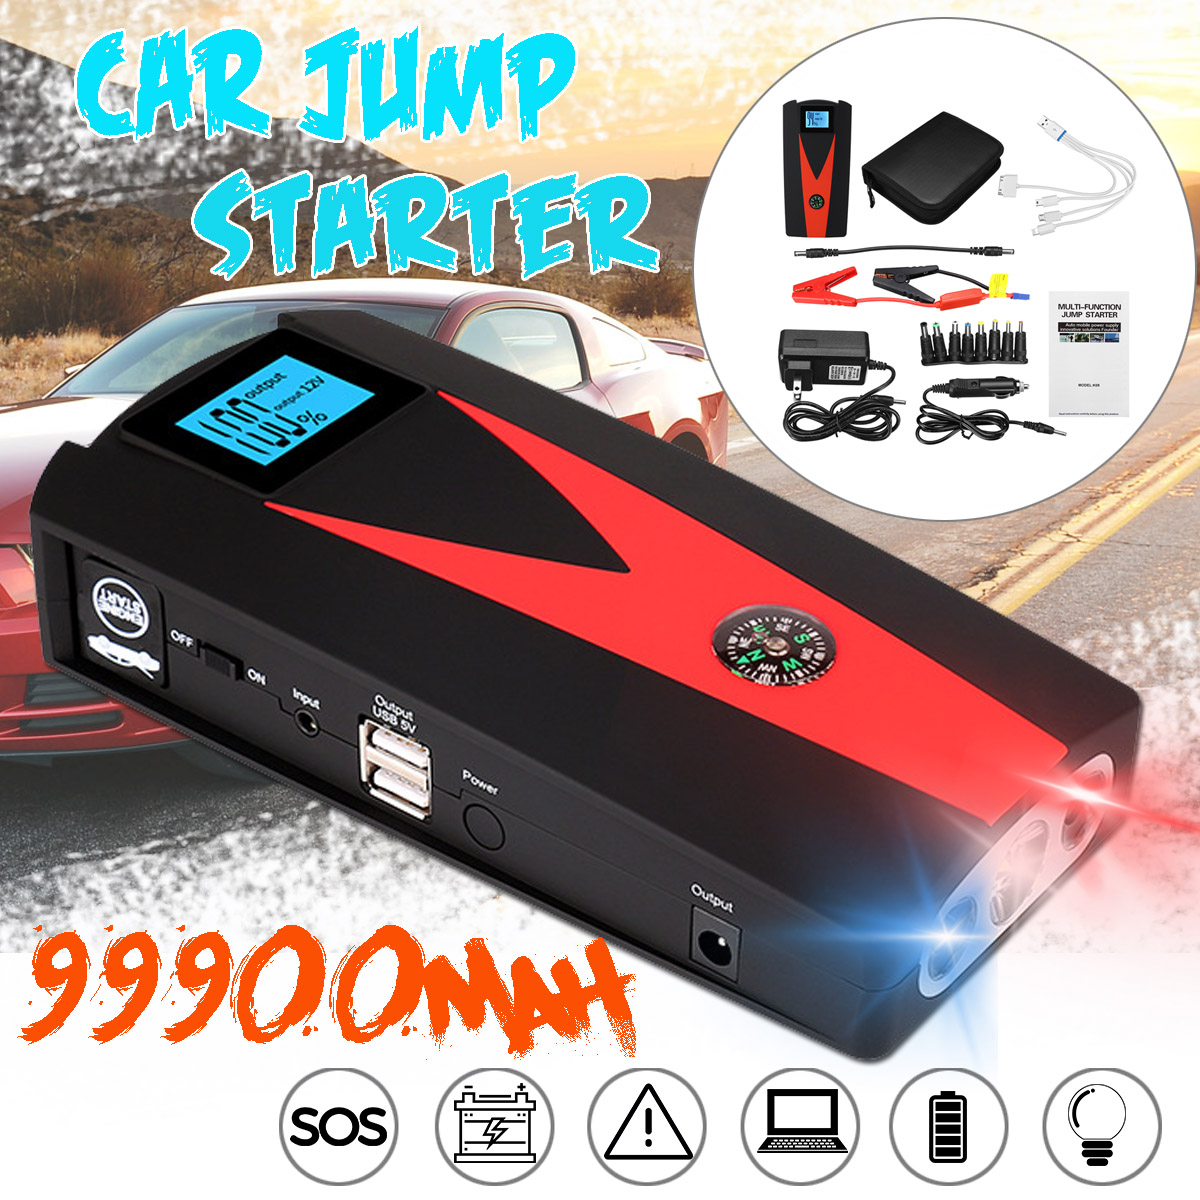 Car Jump Pack >> Details About 12v Portable Emergency Car Jump Starter Pack Booster Battery Charger Power Bank